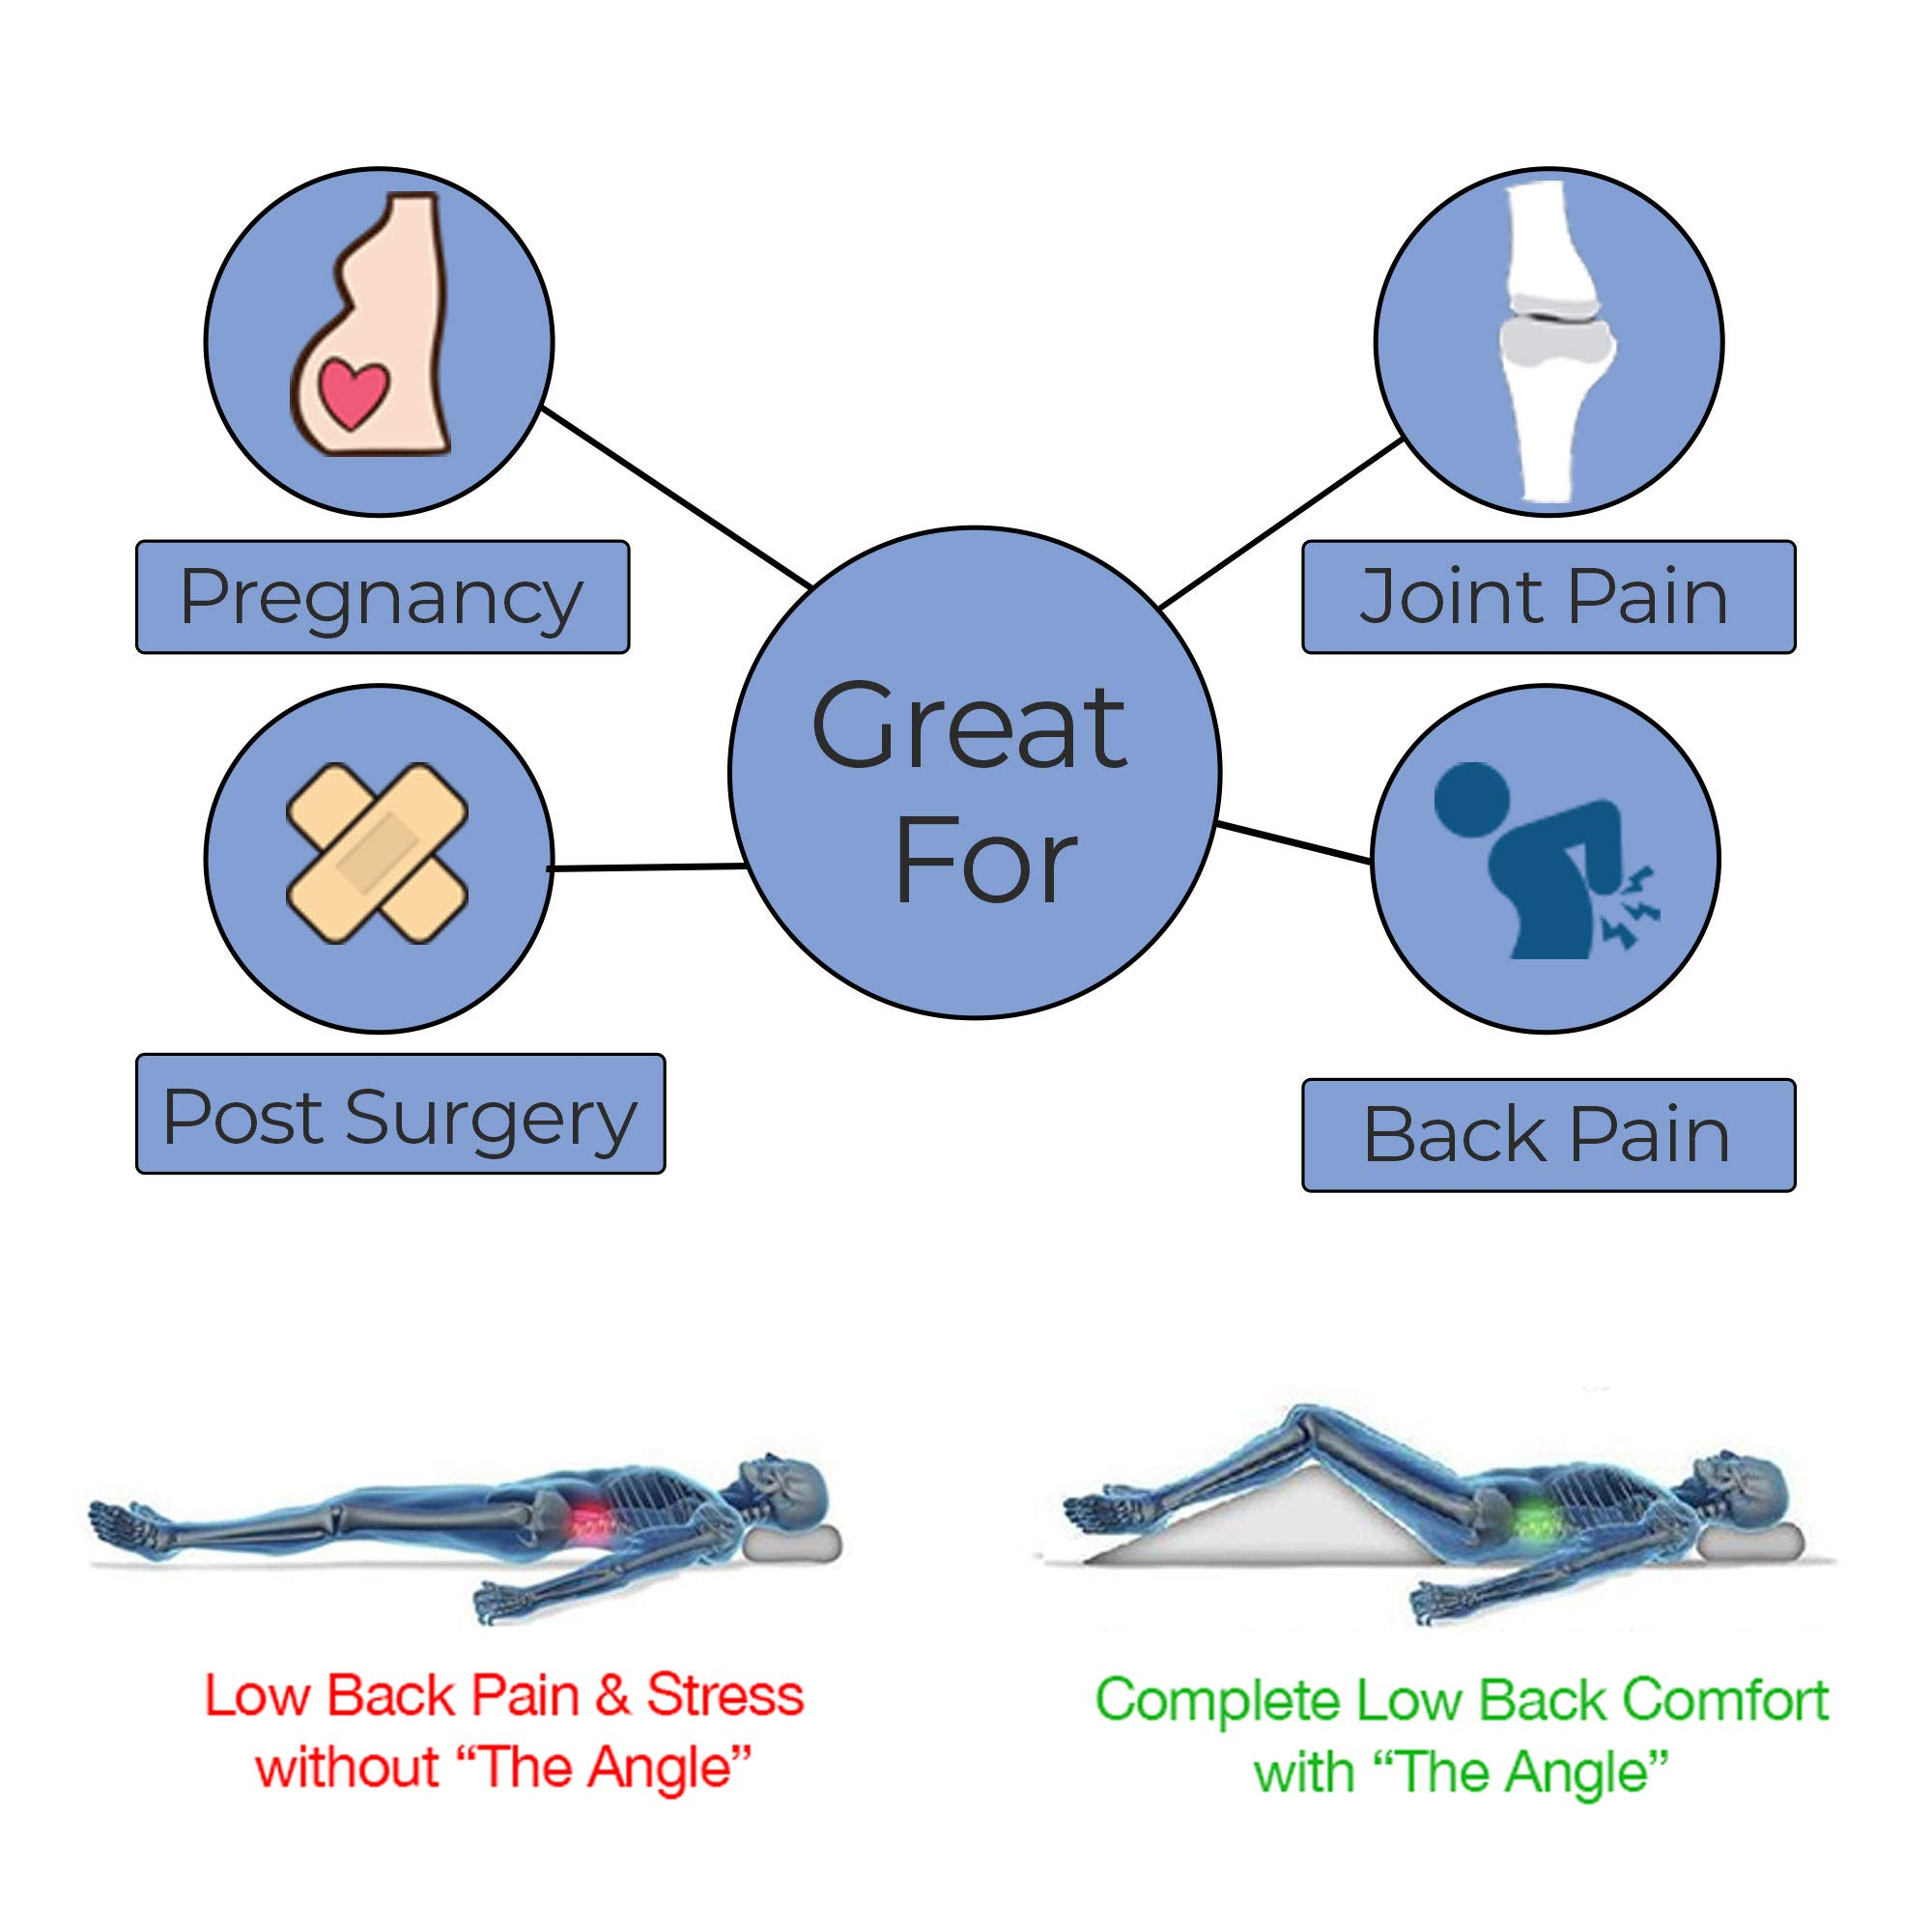 The Angle by Back Support Systems - Guaranteed to Help Reduce Back Pain Immediately. Eco Friendly, Medical Quality Memory Foam Bed Wedge Leg Pillow for Reducing Back Pain, Back Therapy and Sleeping by Back Support Systems (Image #5)